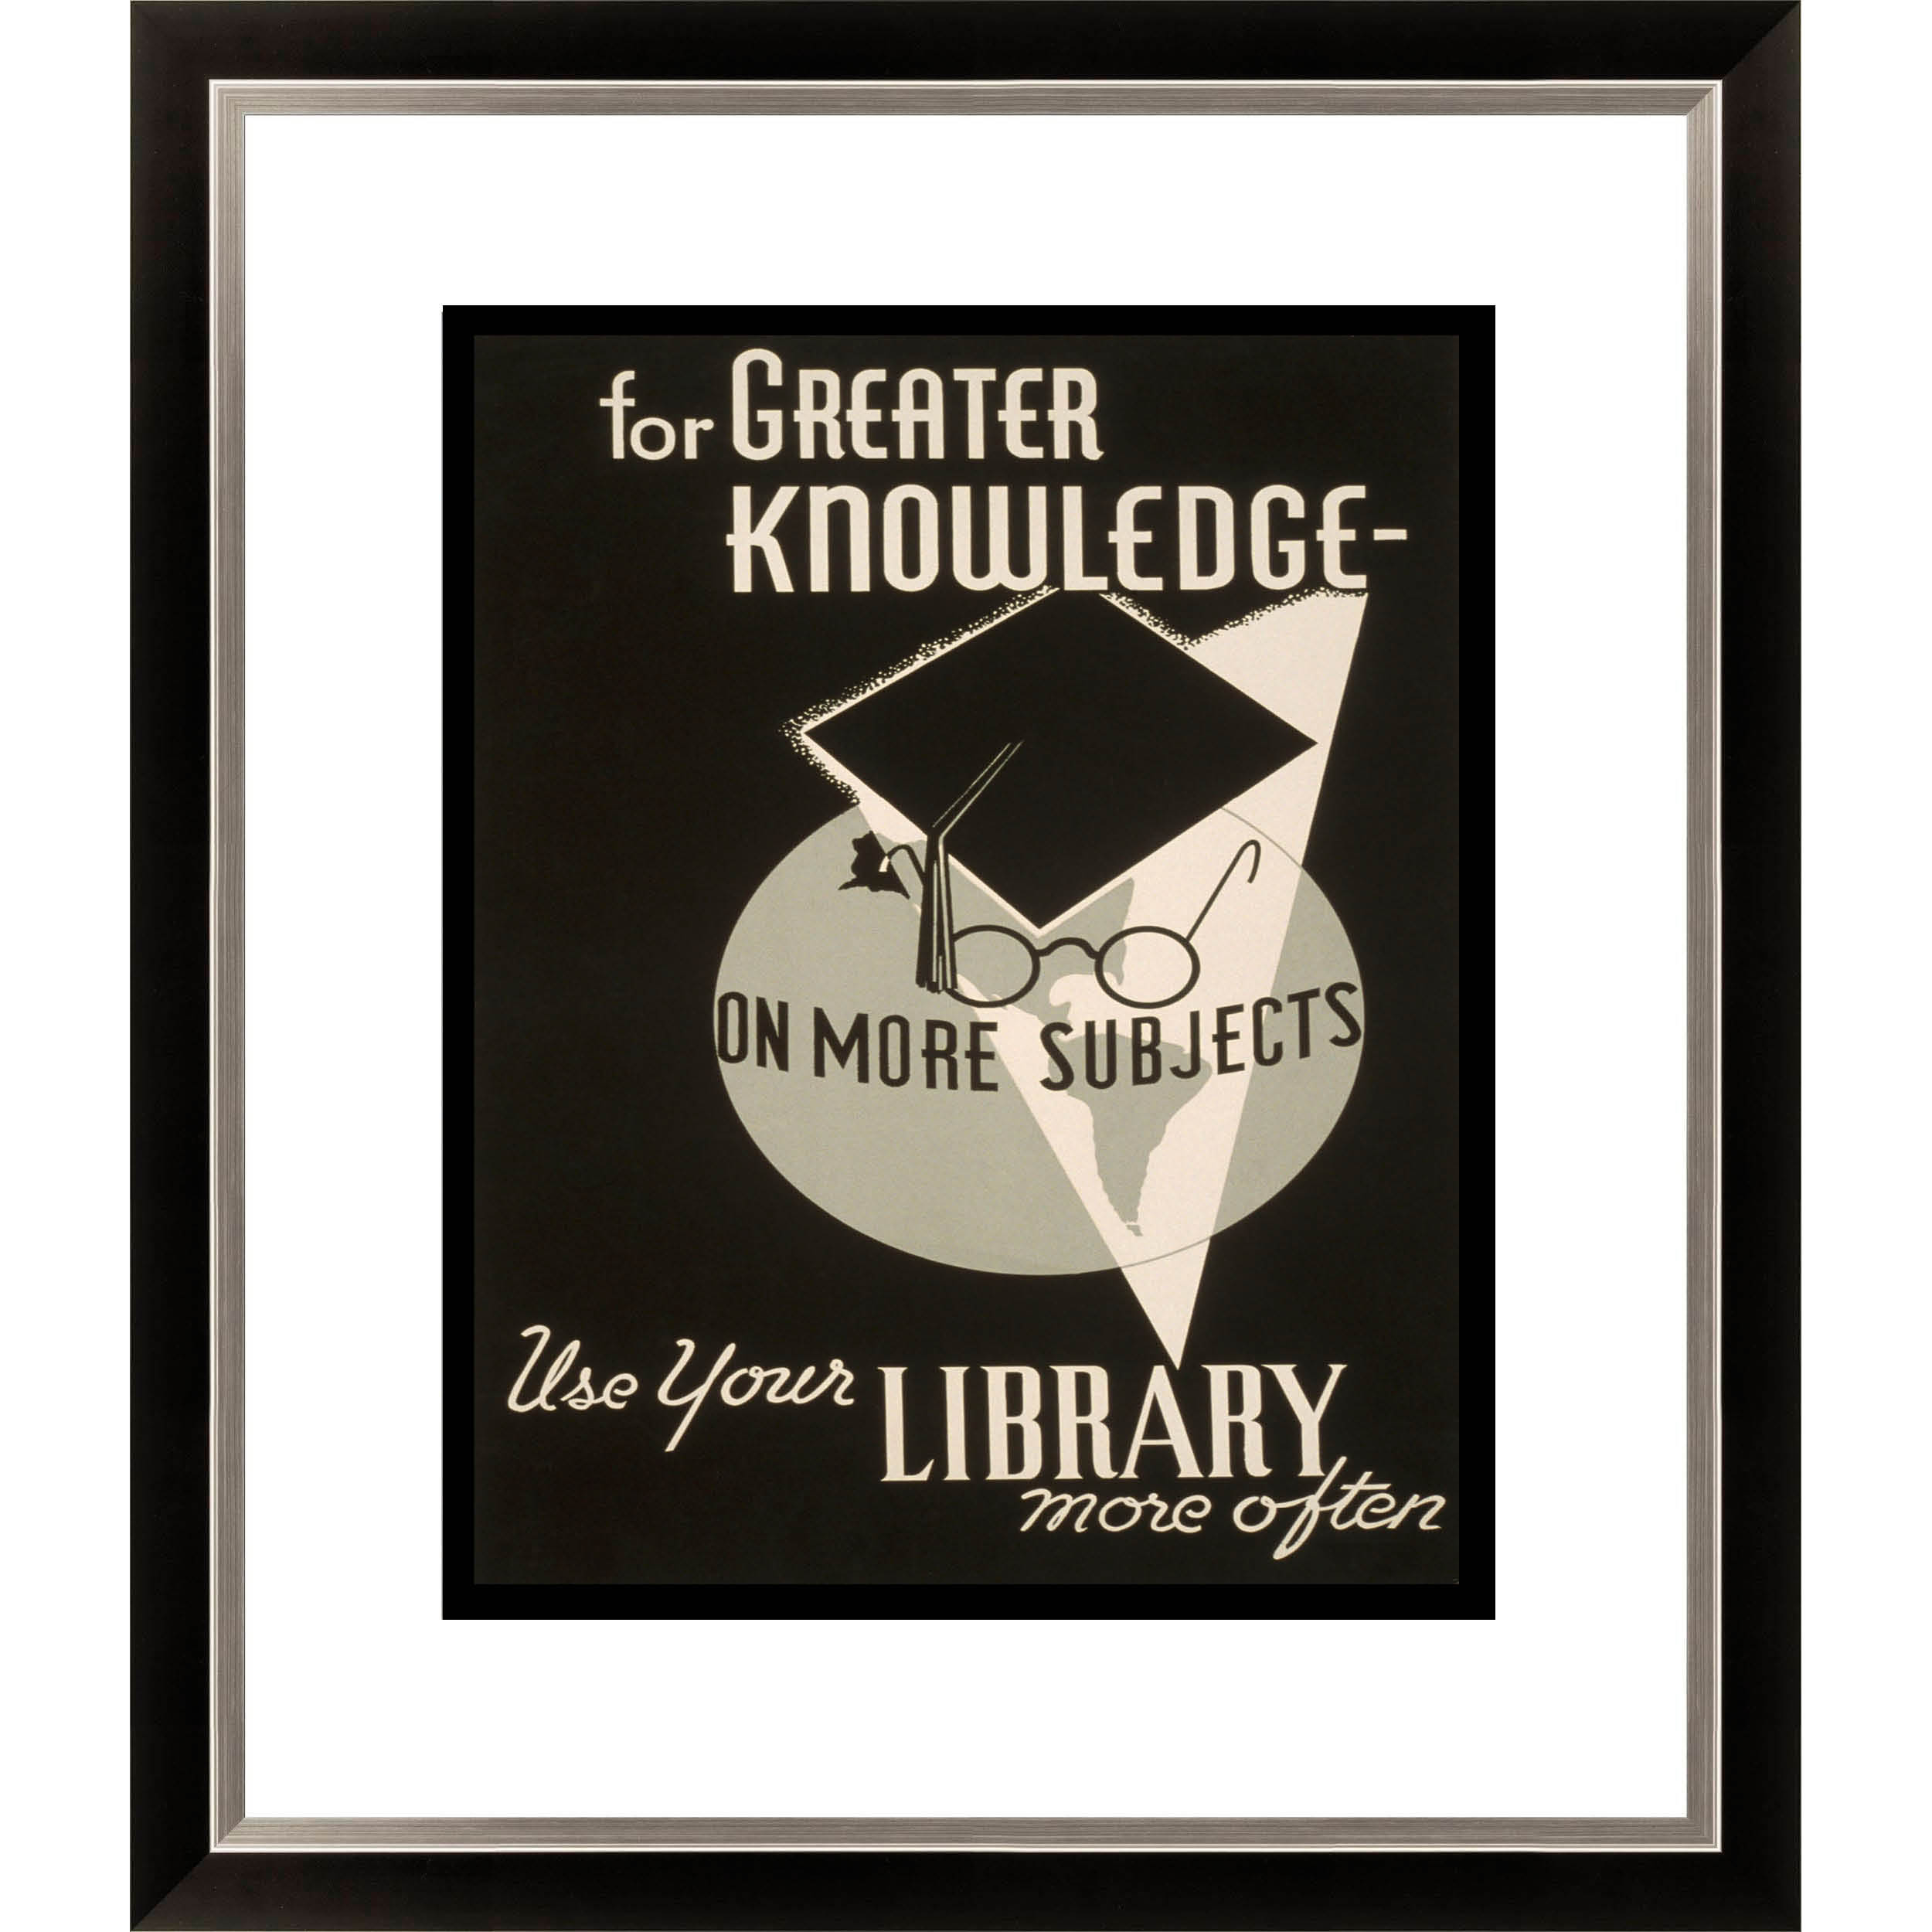 Gallery Direct For Greater Knowledge on More Subjects Use Your Library Framed Limited Edition Giclee Art